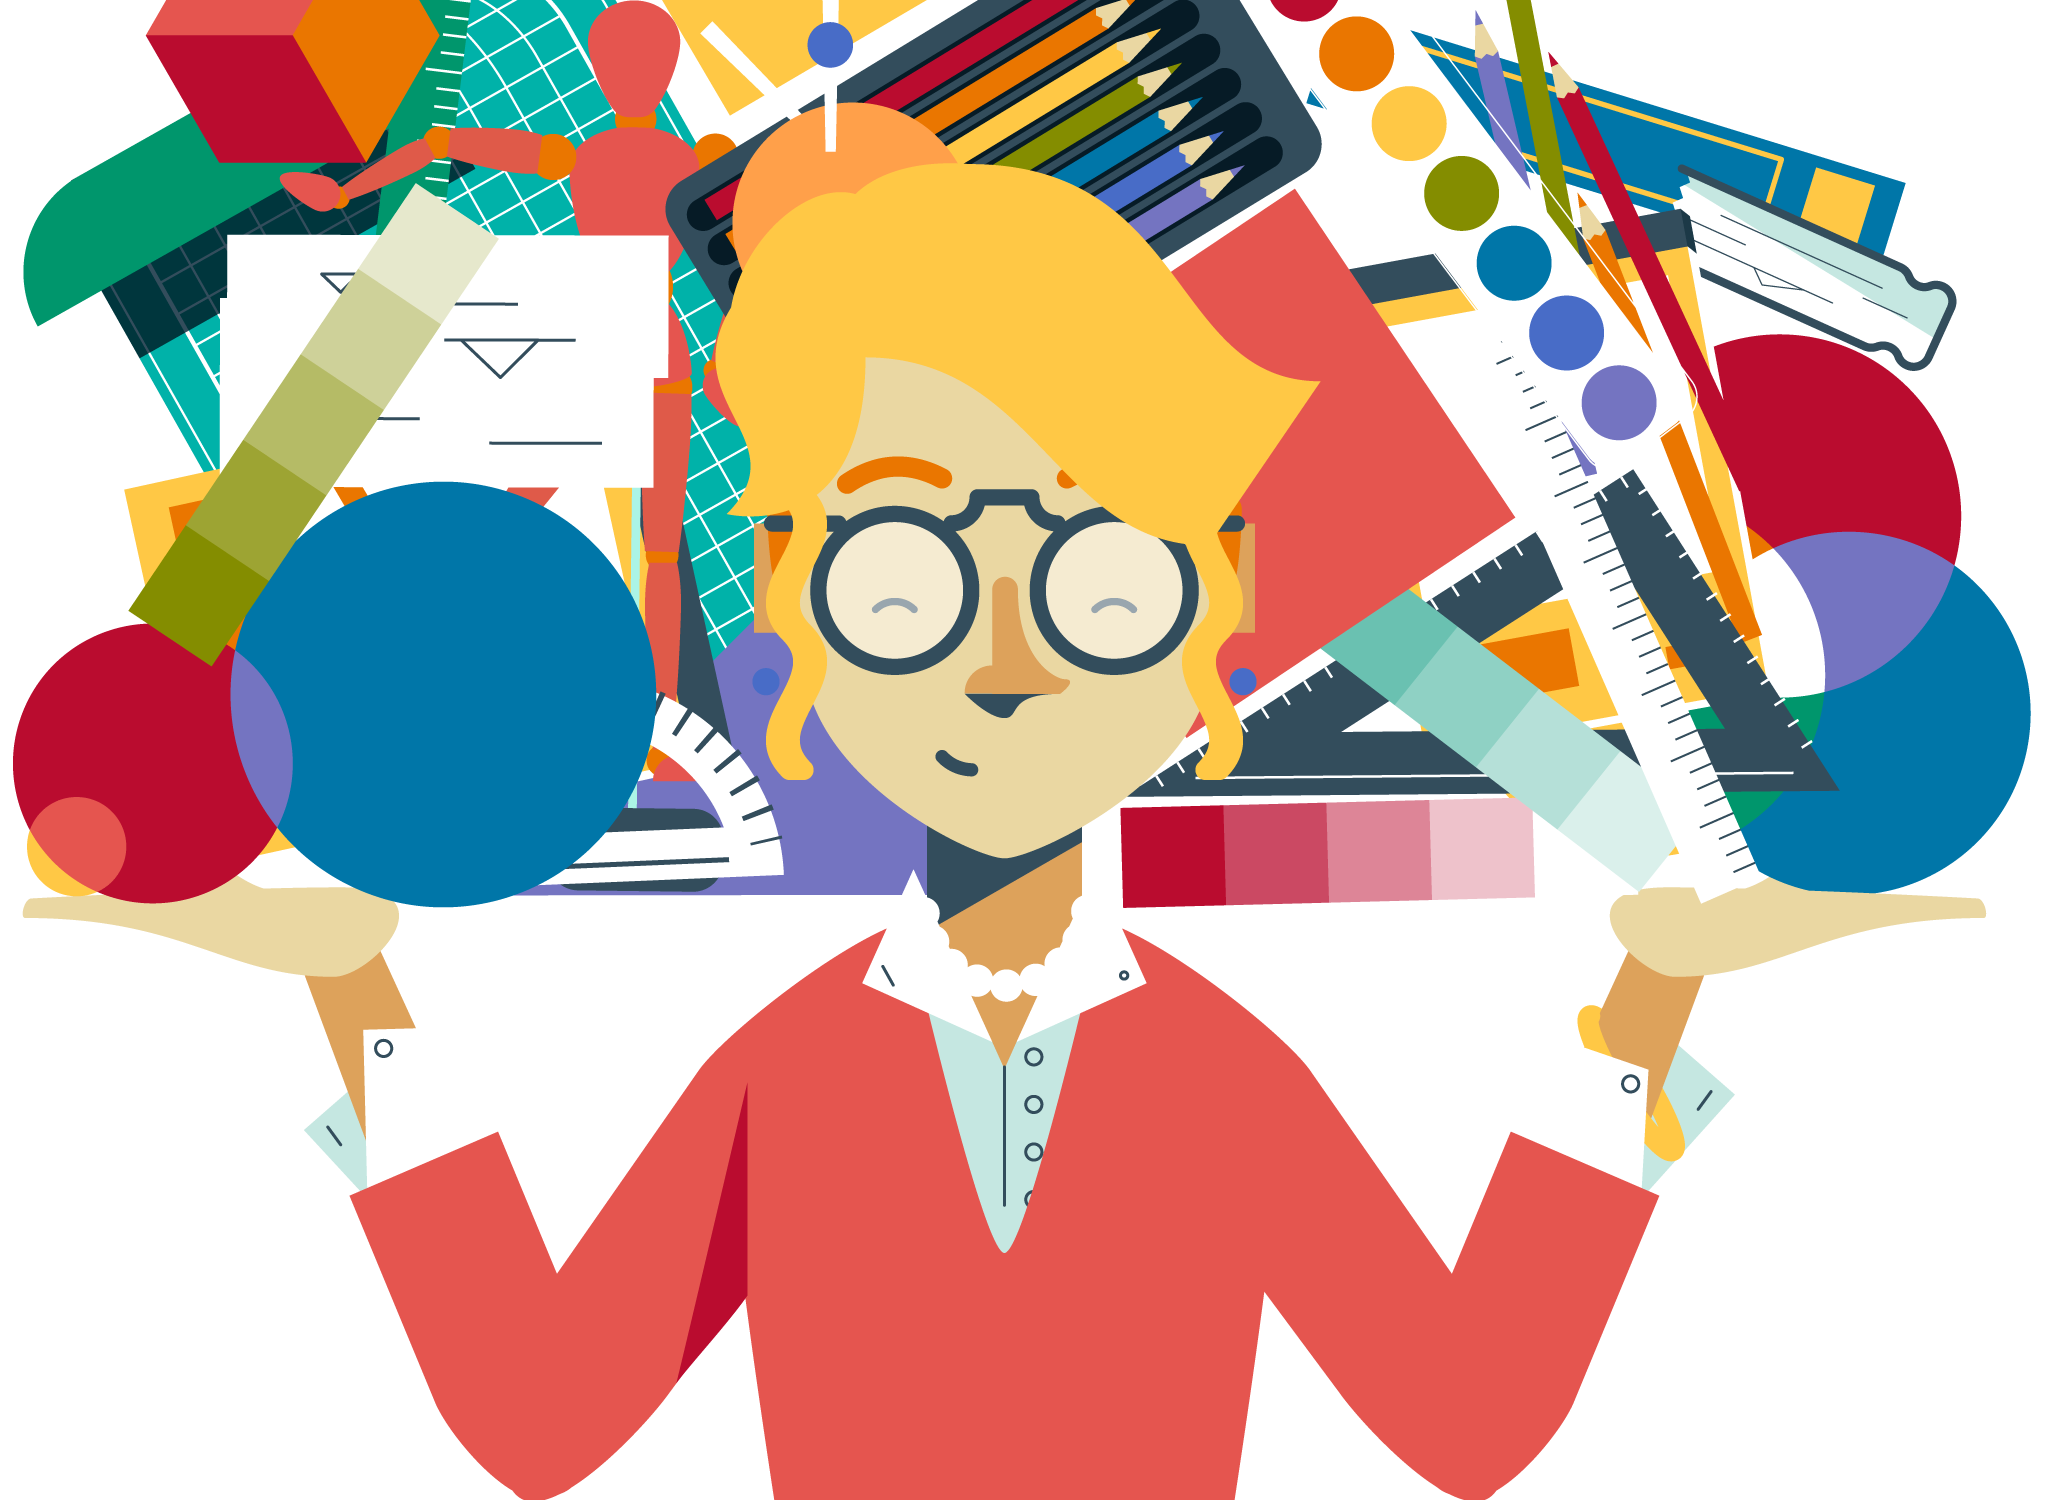 Professional clipart individual professional. Introducing art ed pro